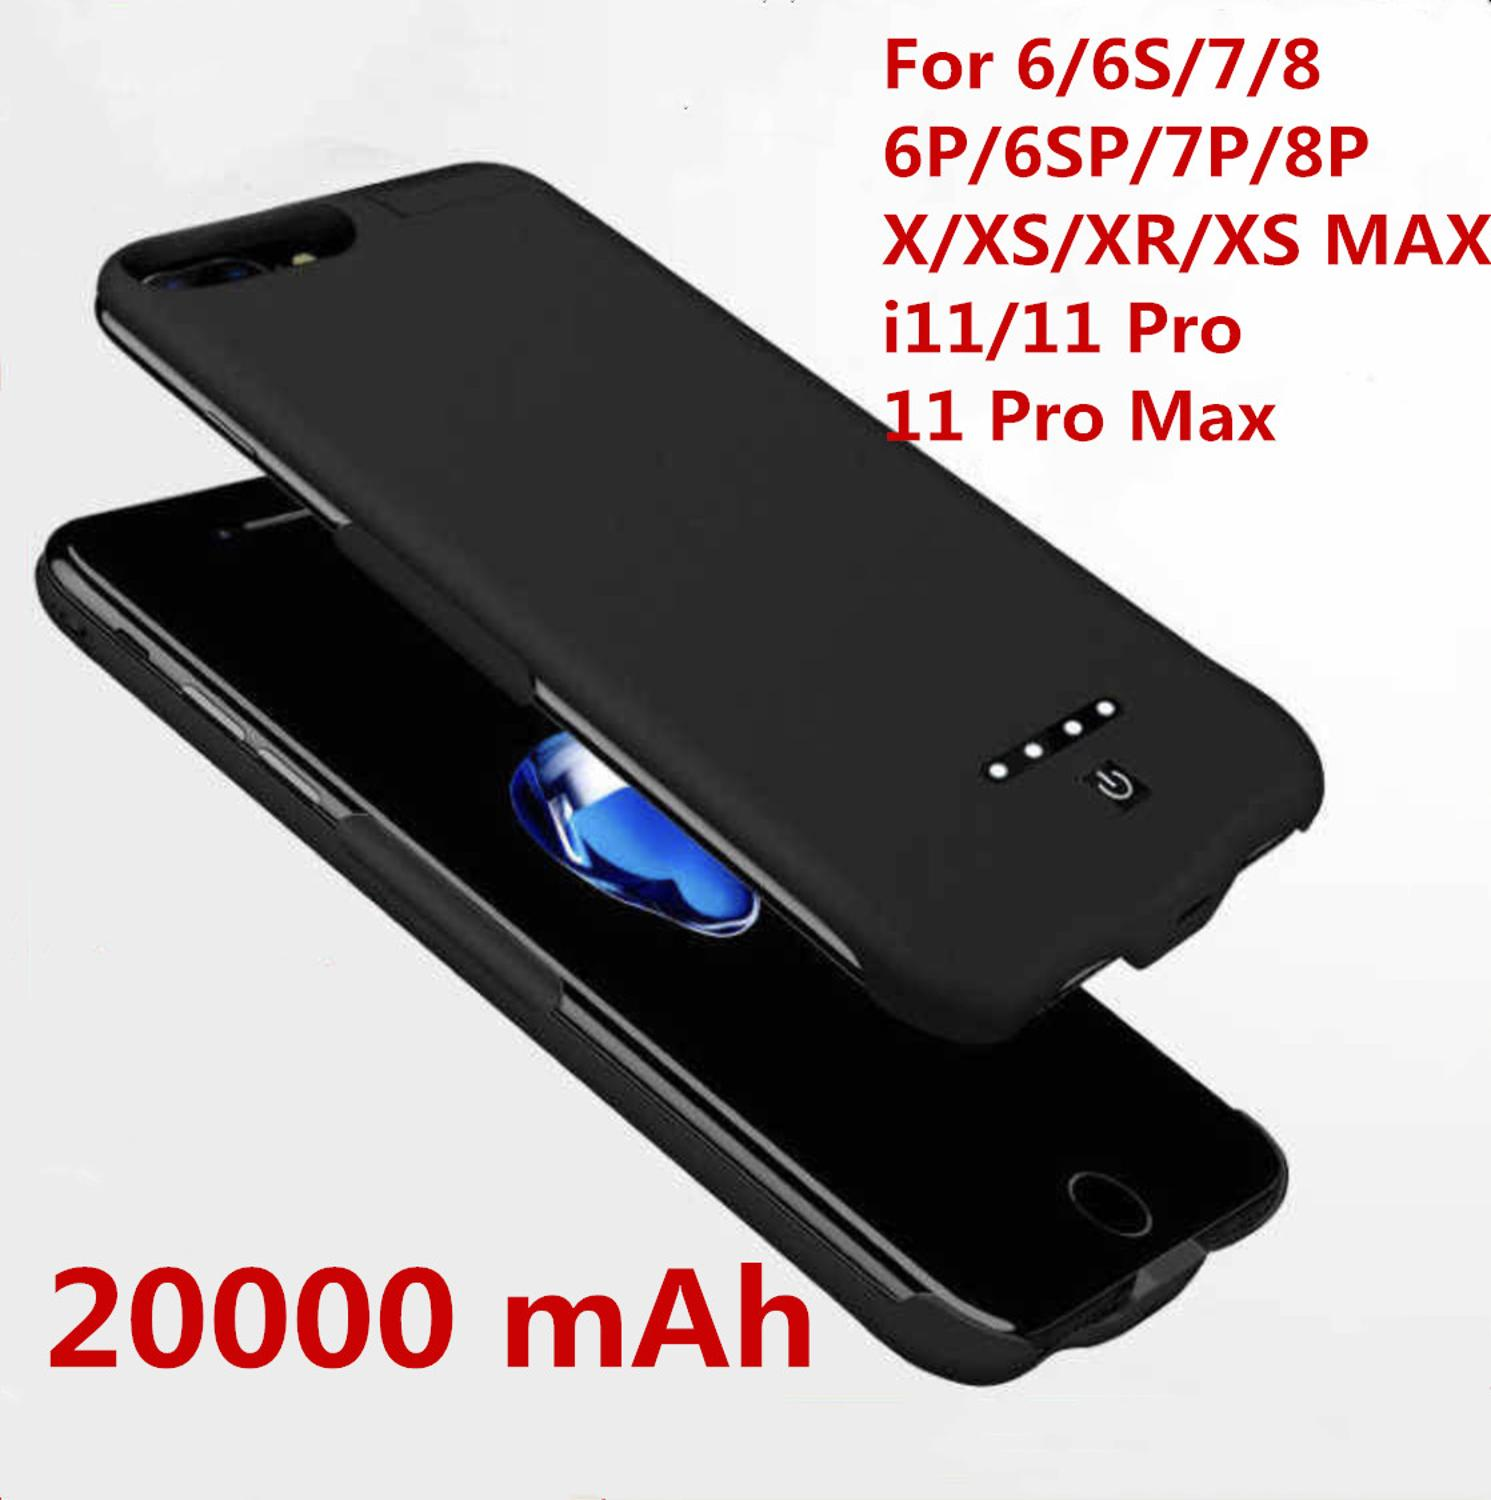 Hot 20000mah Power Bank Case For IPhone 6 6s 7 Plus Case Battery Charger Case For IPhone X XS XR 11 Pro Power Bank Charging Case